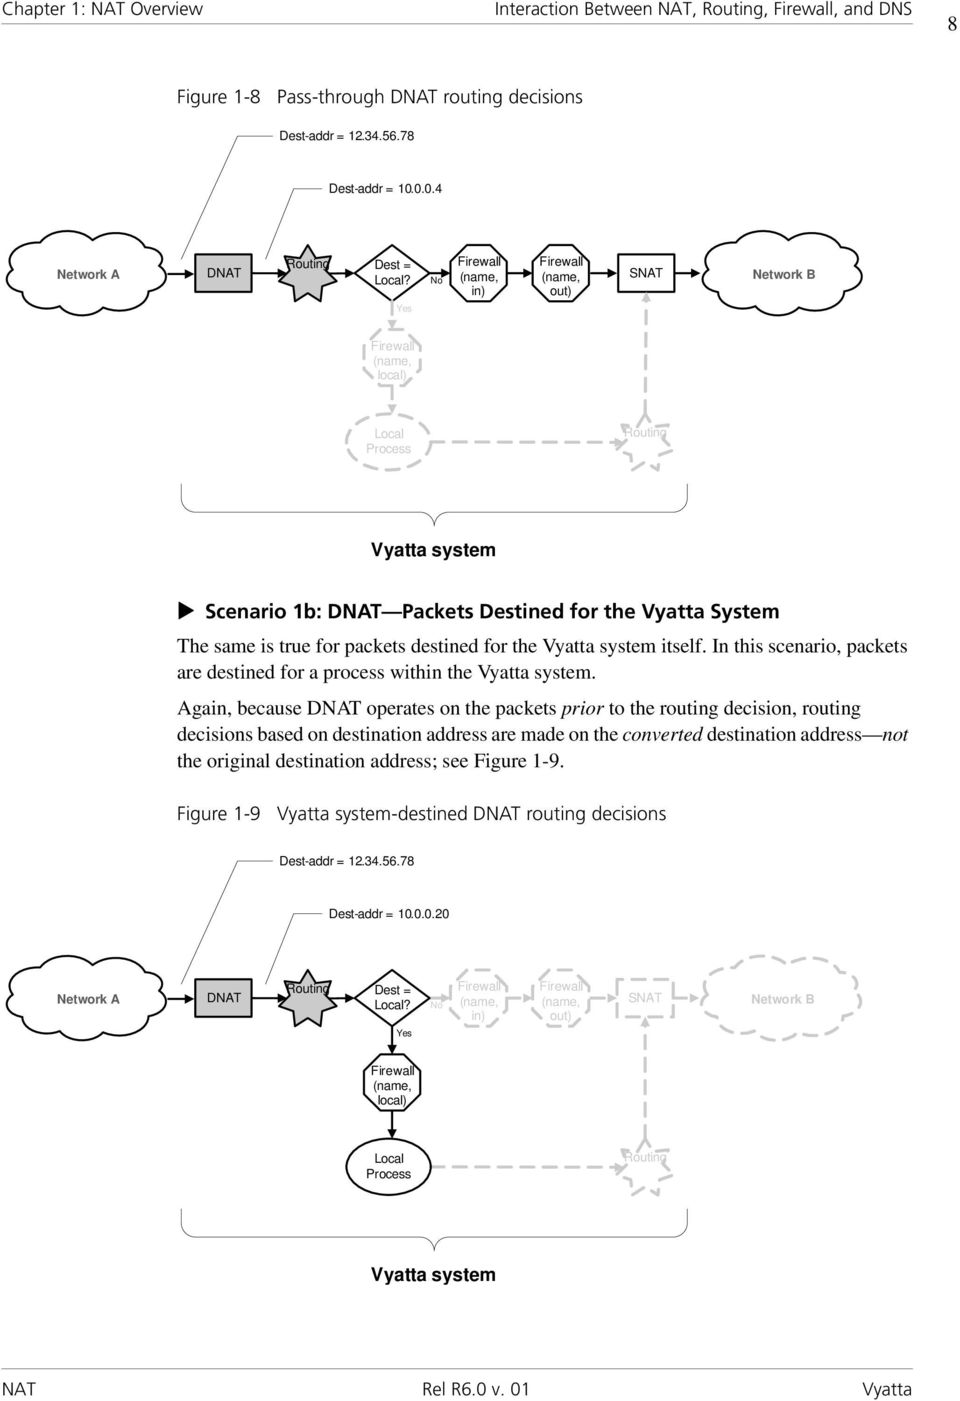 Yes No Firewall (name, in) Firewall (name, out) SNAT Network B Firewall (name, local) Local Process Routing Vyatta system Scenario 1b: DNAT Packets Destined for the Vyatta System The same is true for